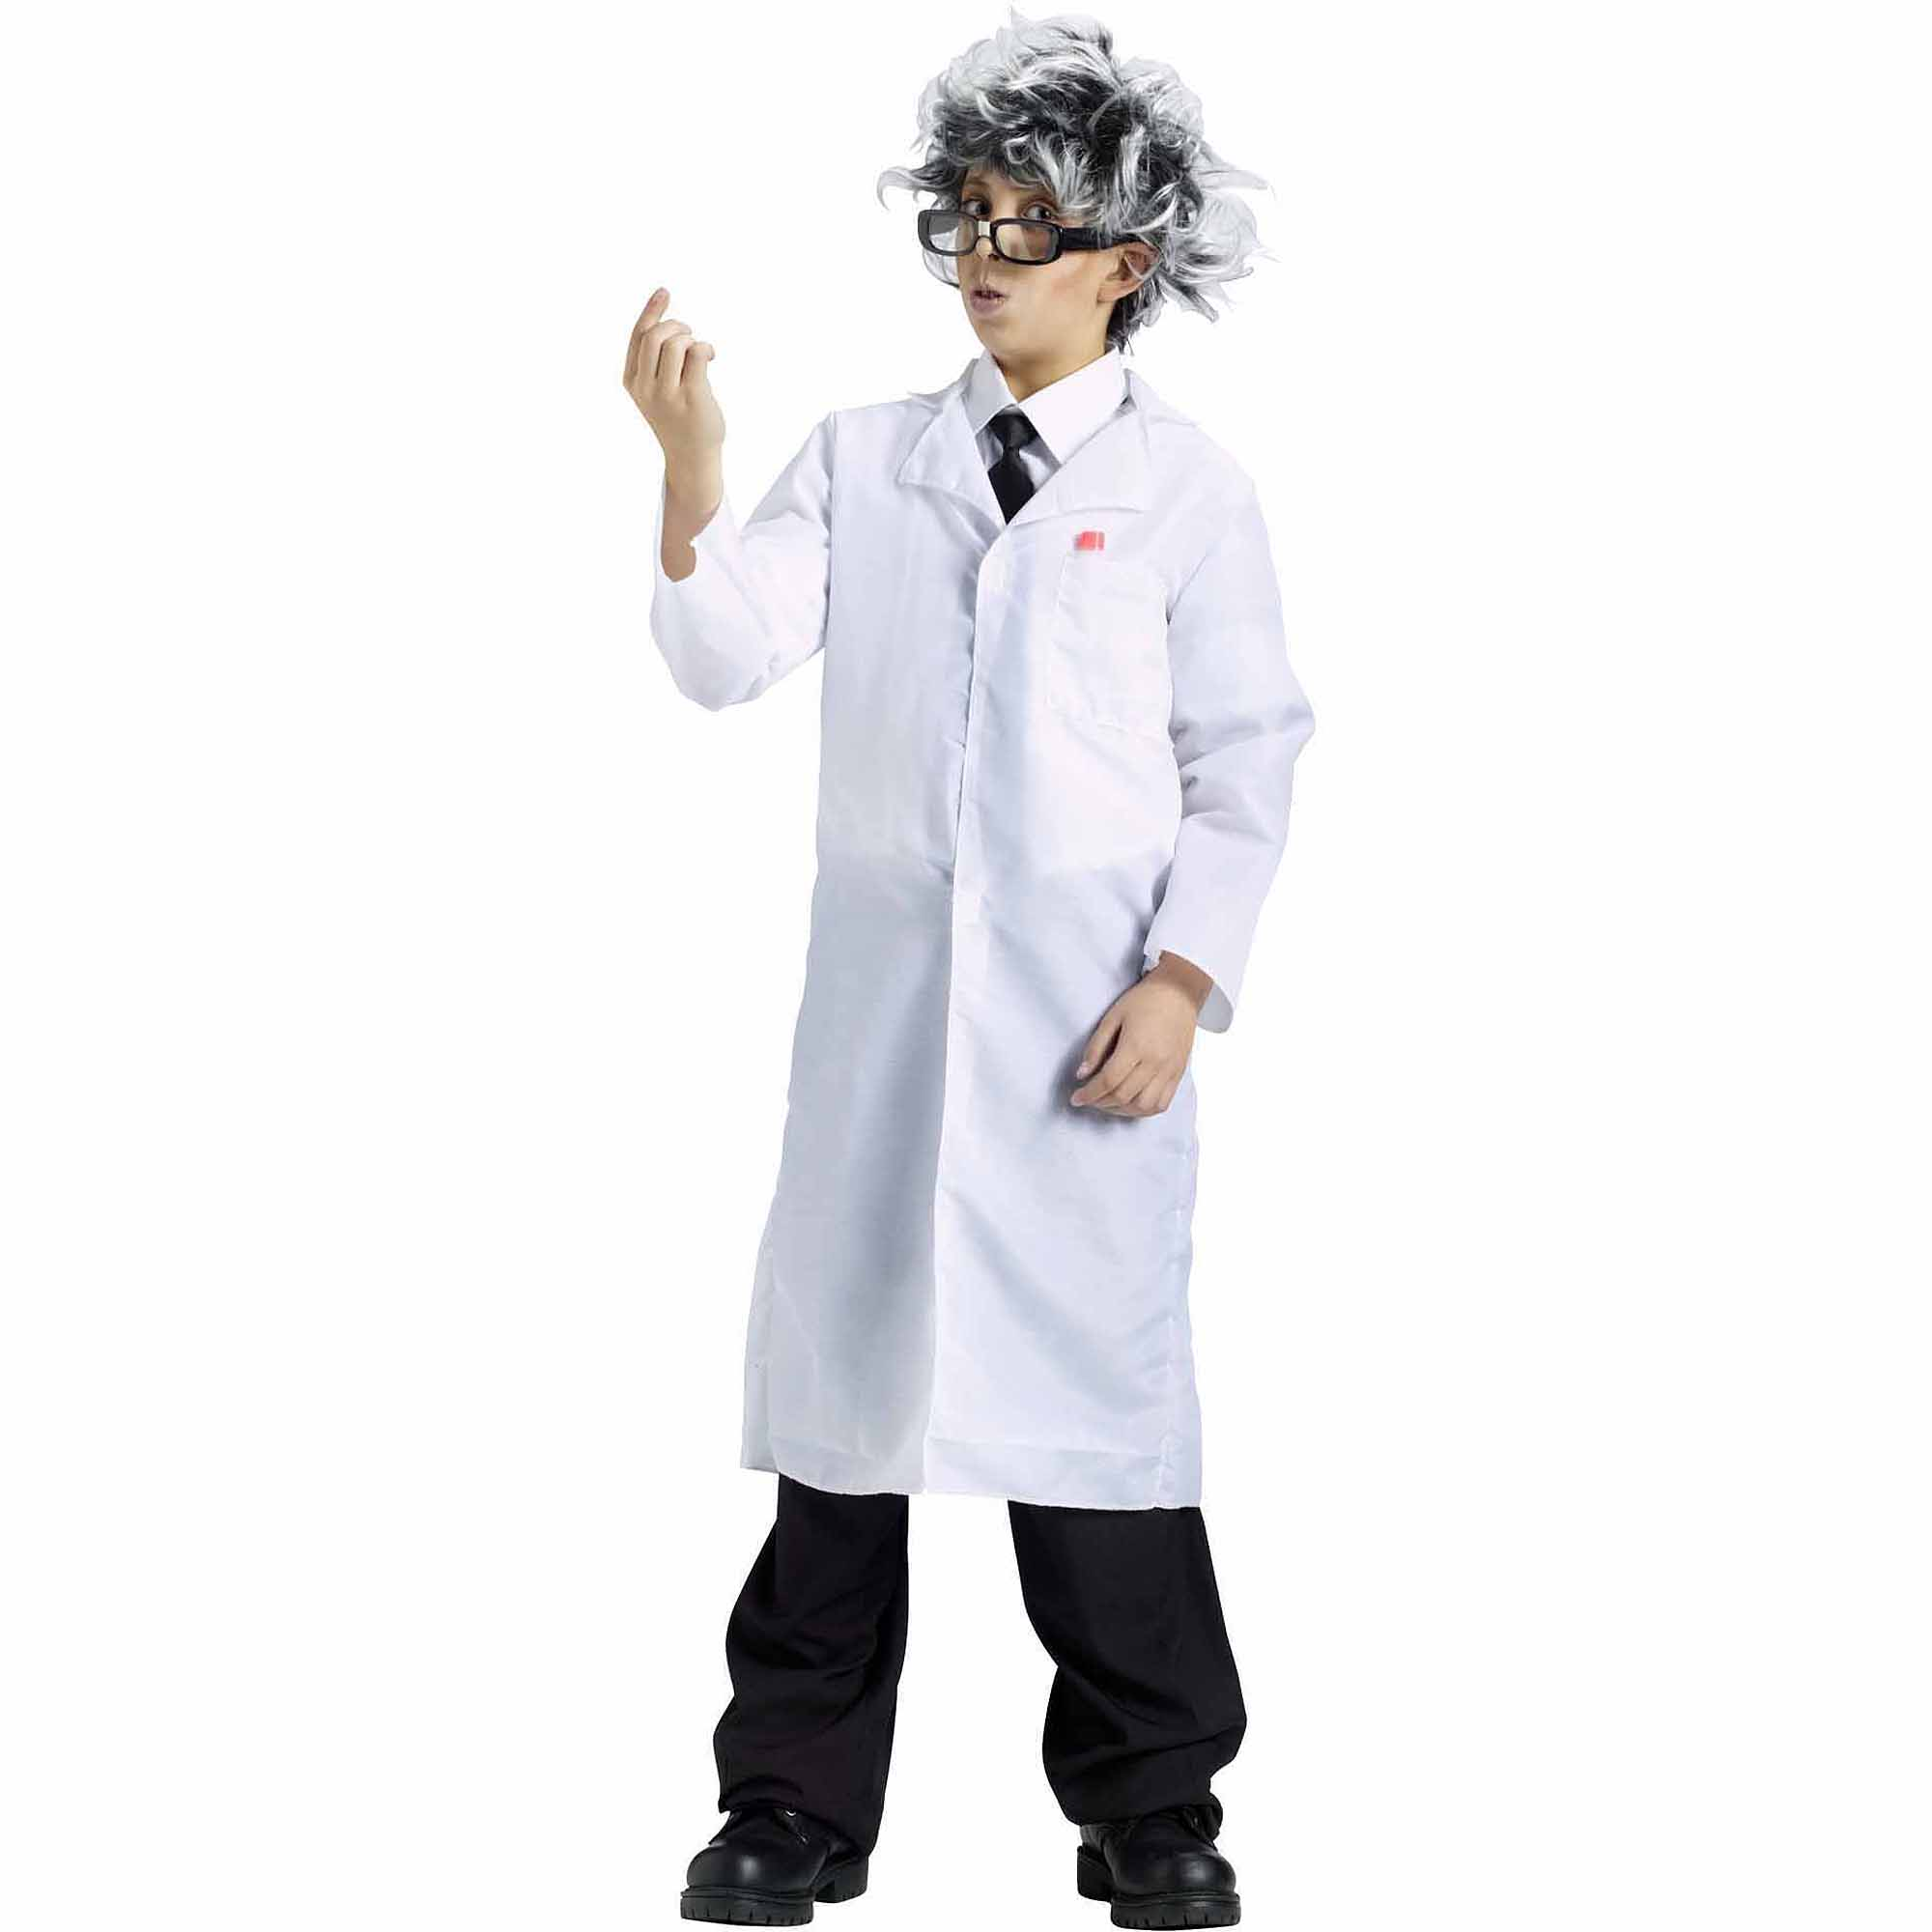 Kids Scientist Costume